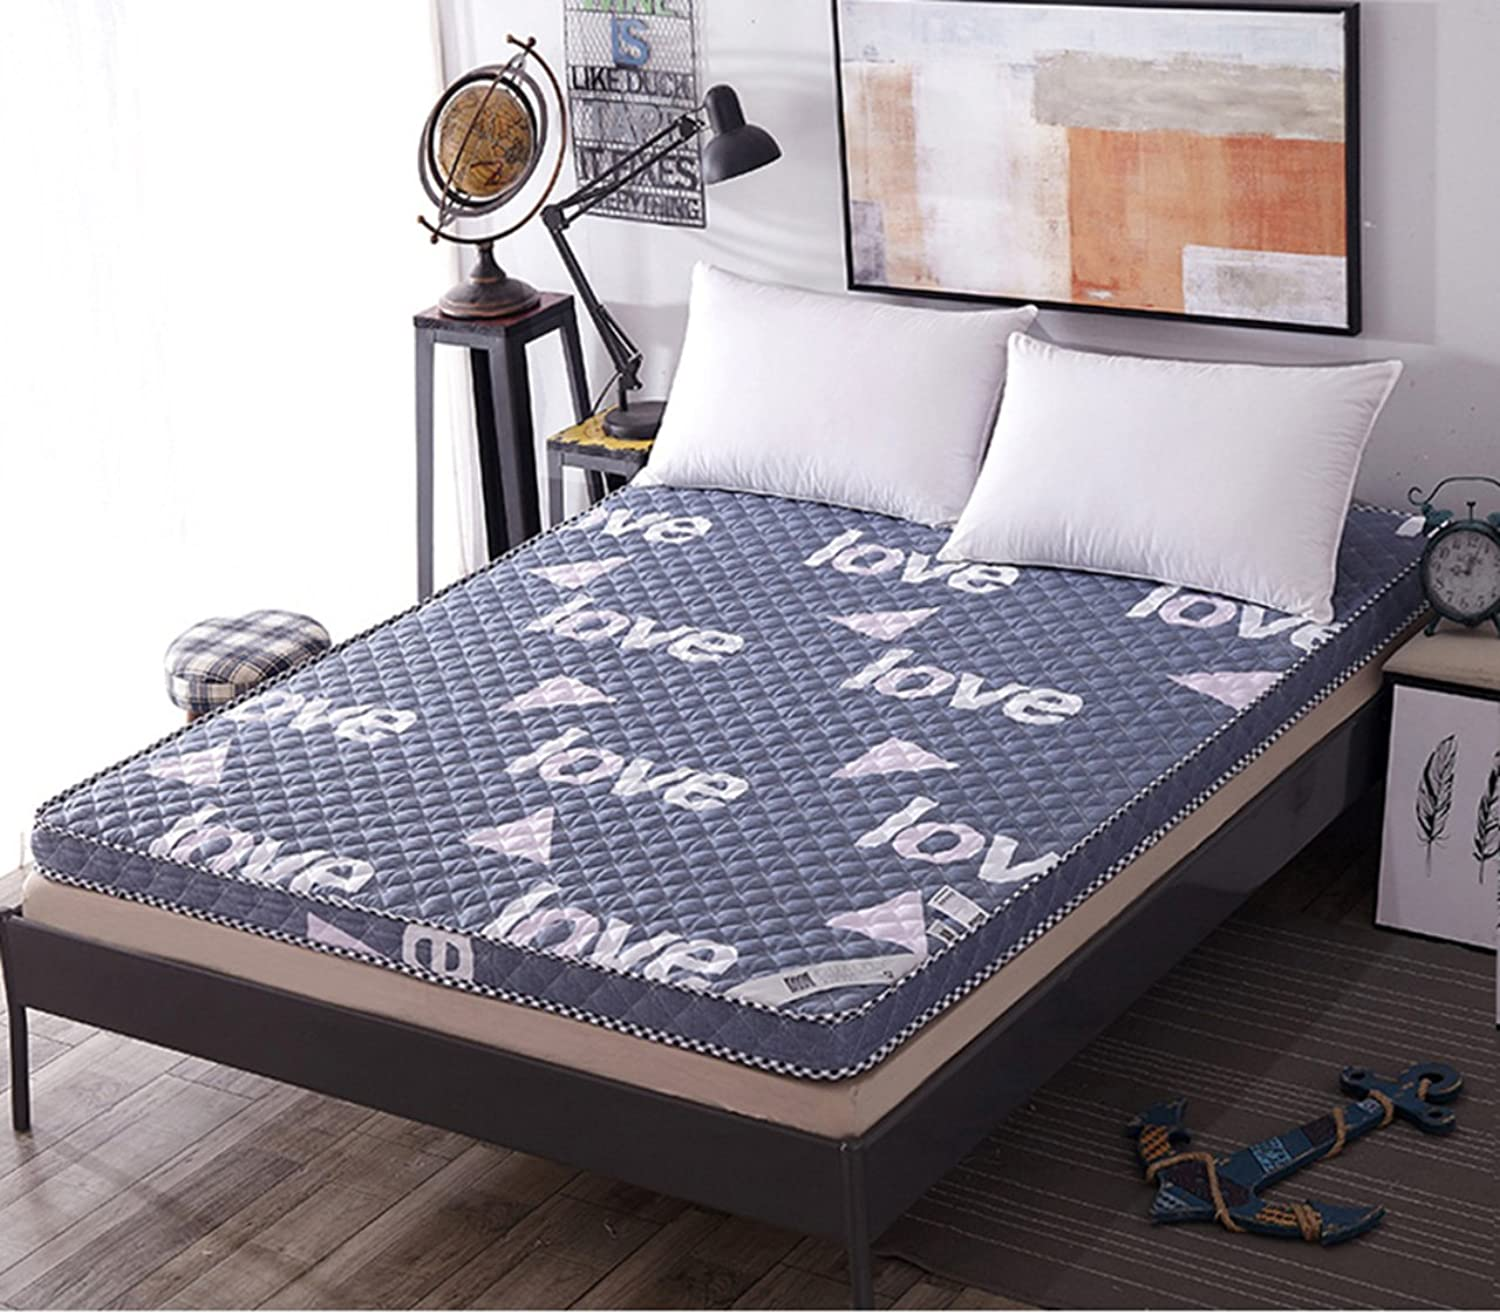 Cotton Breathable Tatami Mattress, Double Bed Predection pad Student Dorm Single futon Mattress Topper Quilted Non-Slip Floor mat-C 150x220cm(59x87inch)